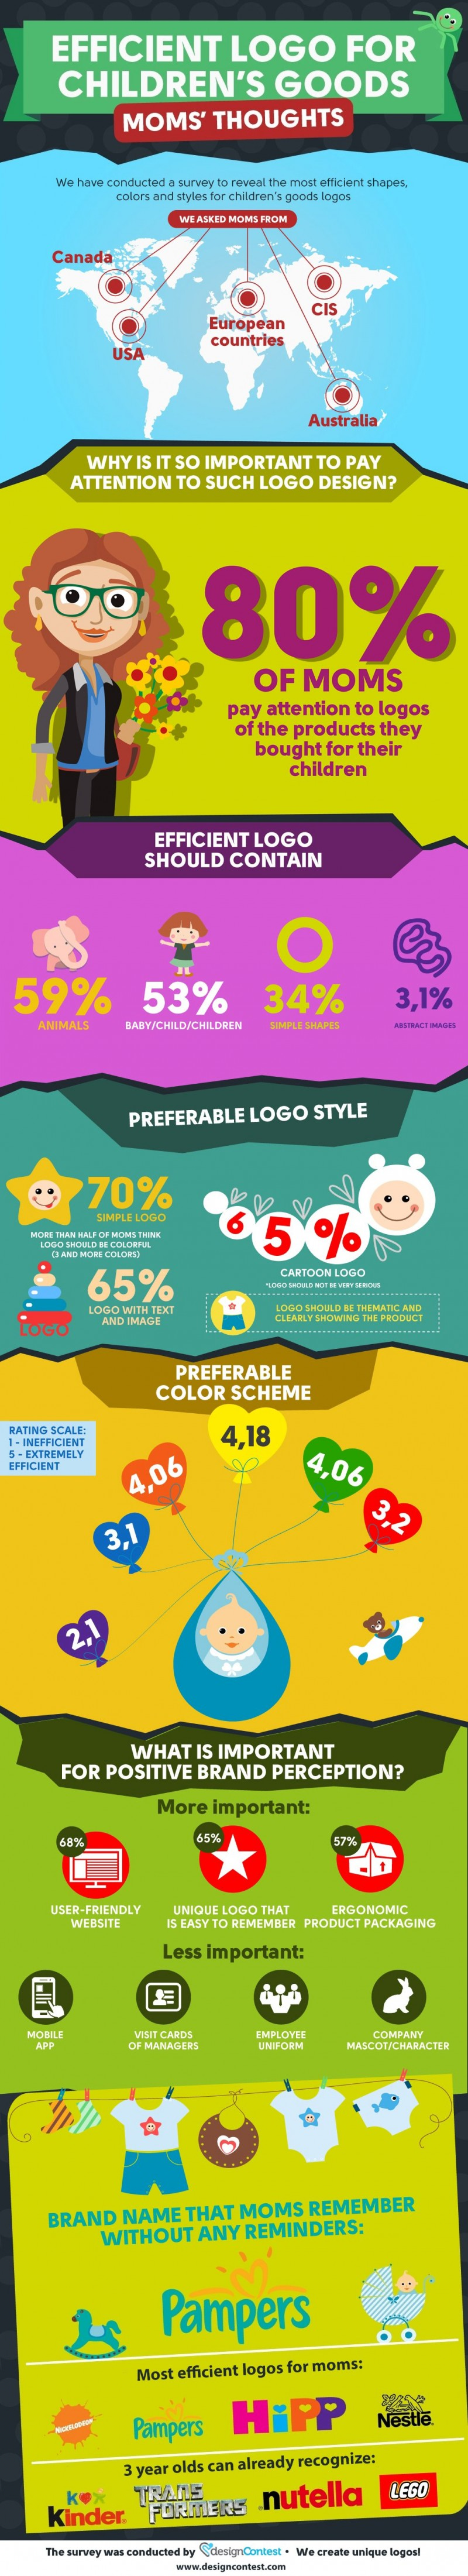 Tips-for-Efficient-Childrens-Goods-Logo